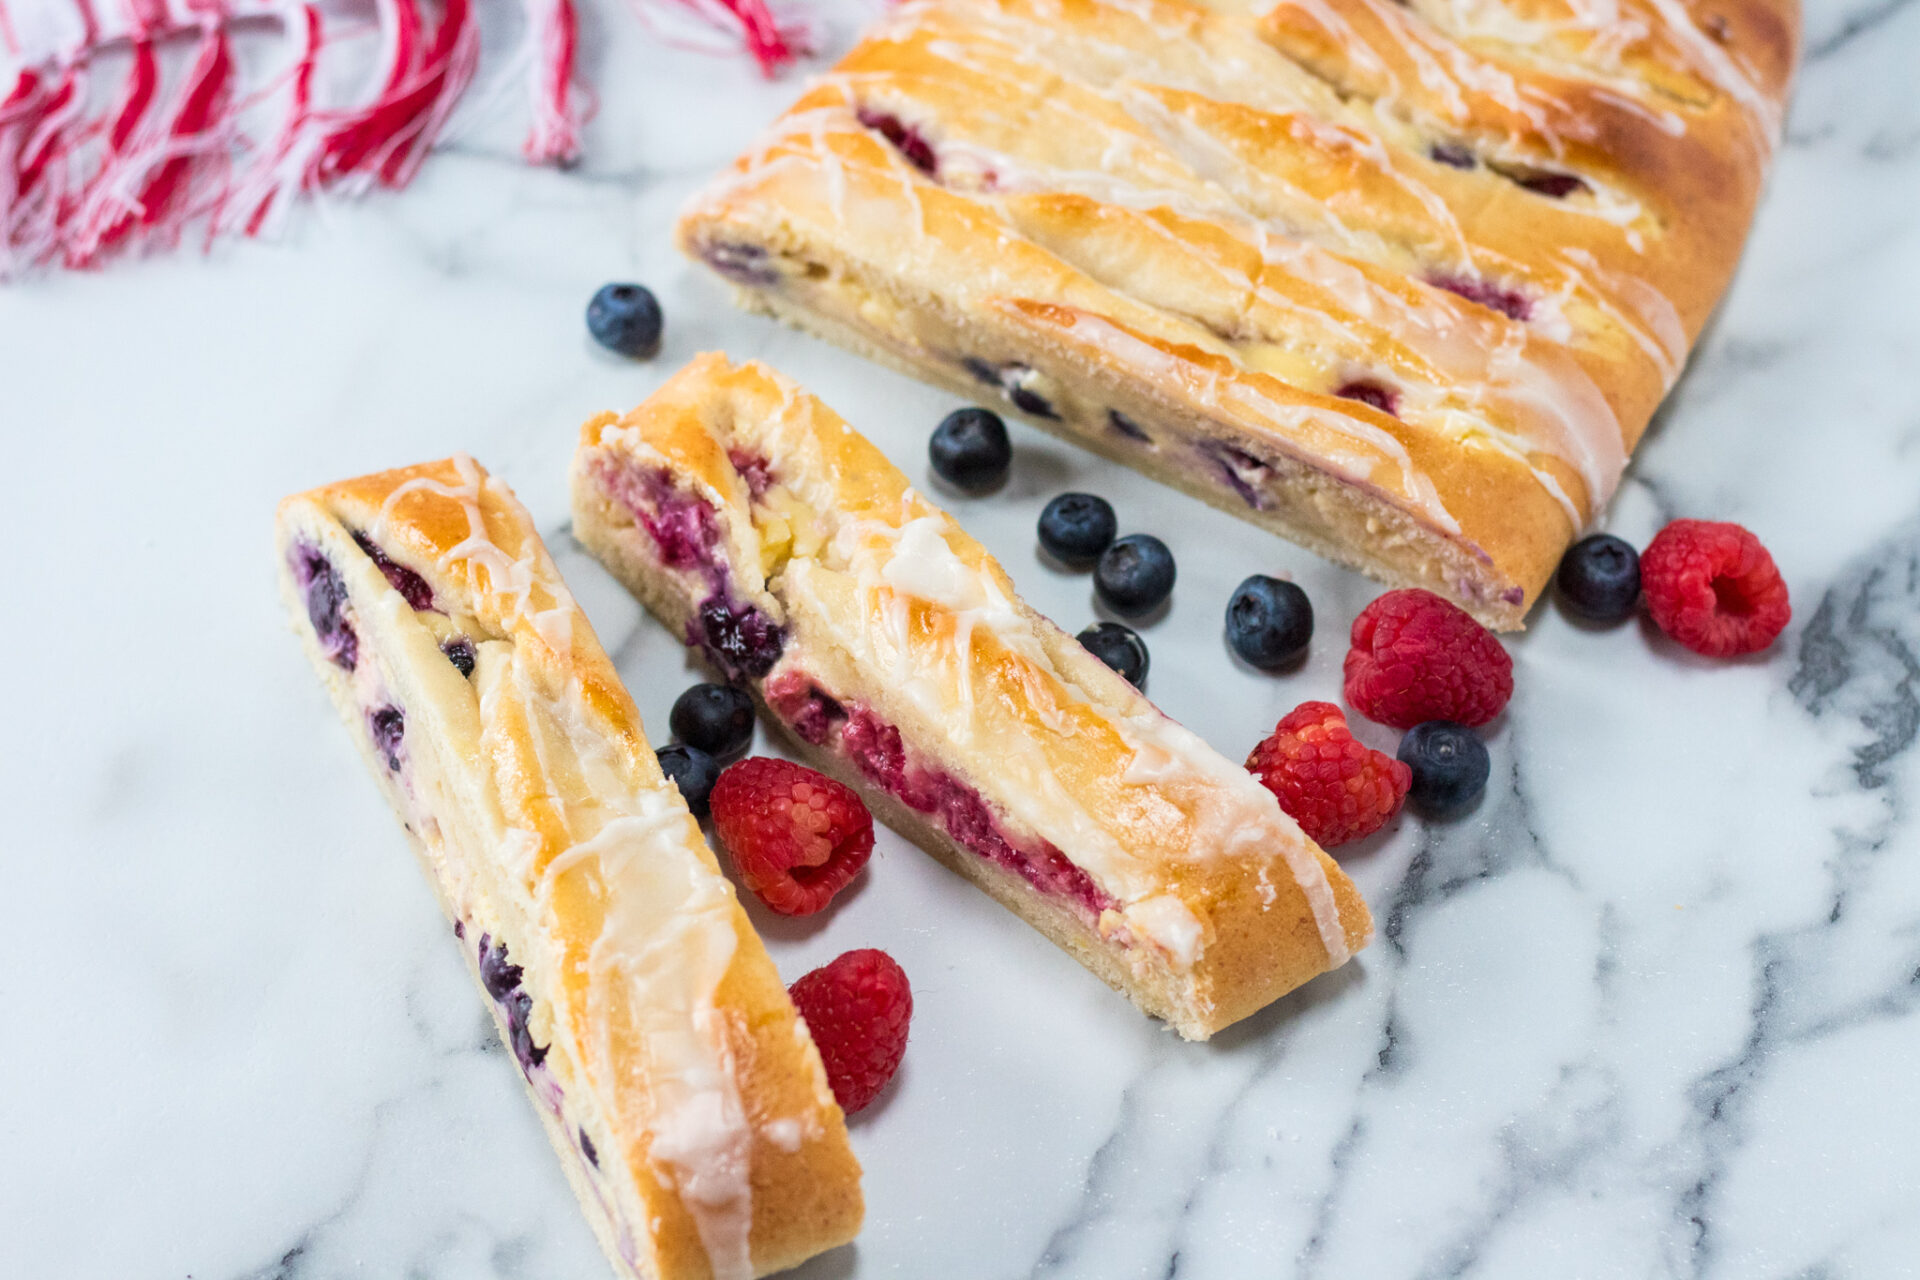 Enjoy a delicious family sized Berry Danish with all your loved ones! This Berry Danish takes just over an hour to prepare and will leave your mouth watering.